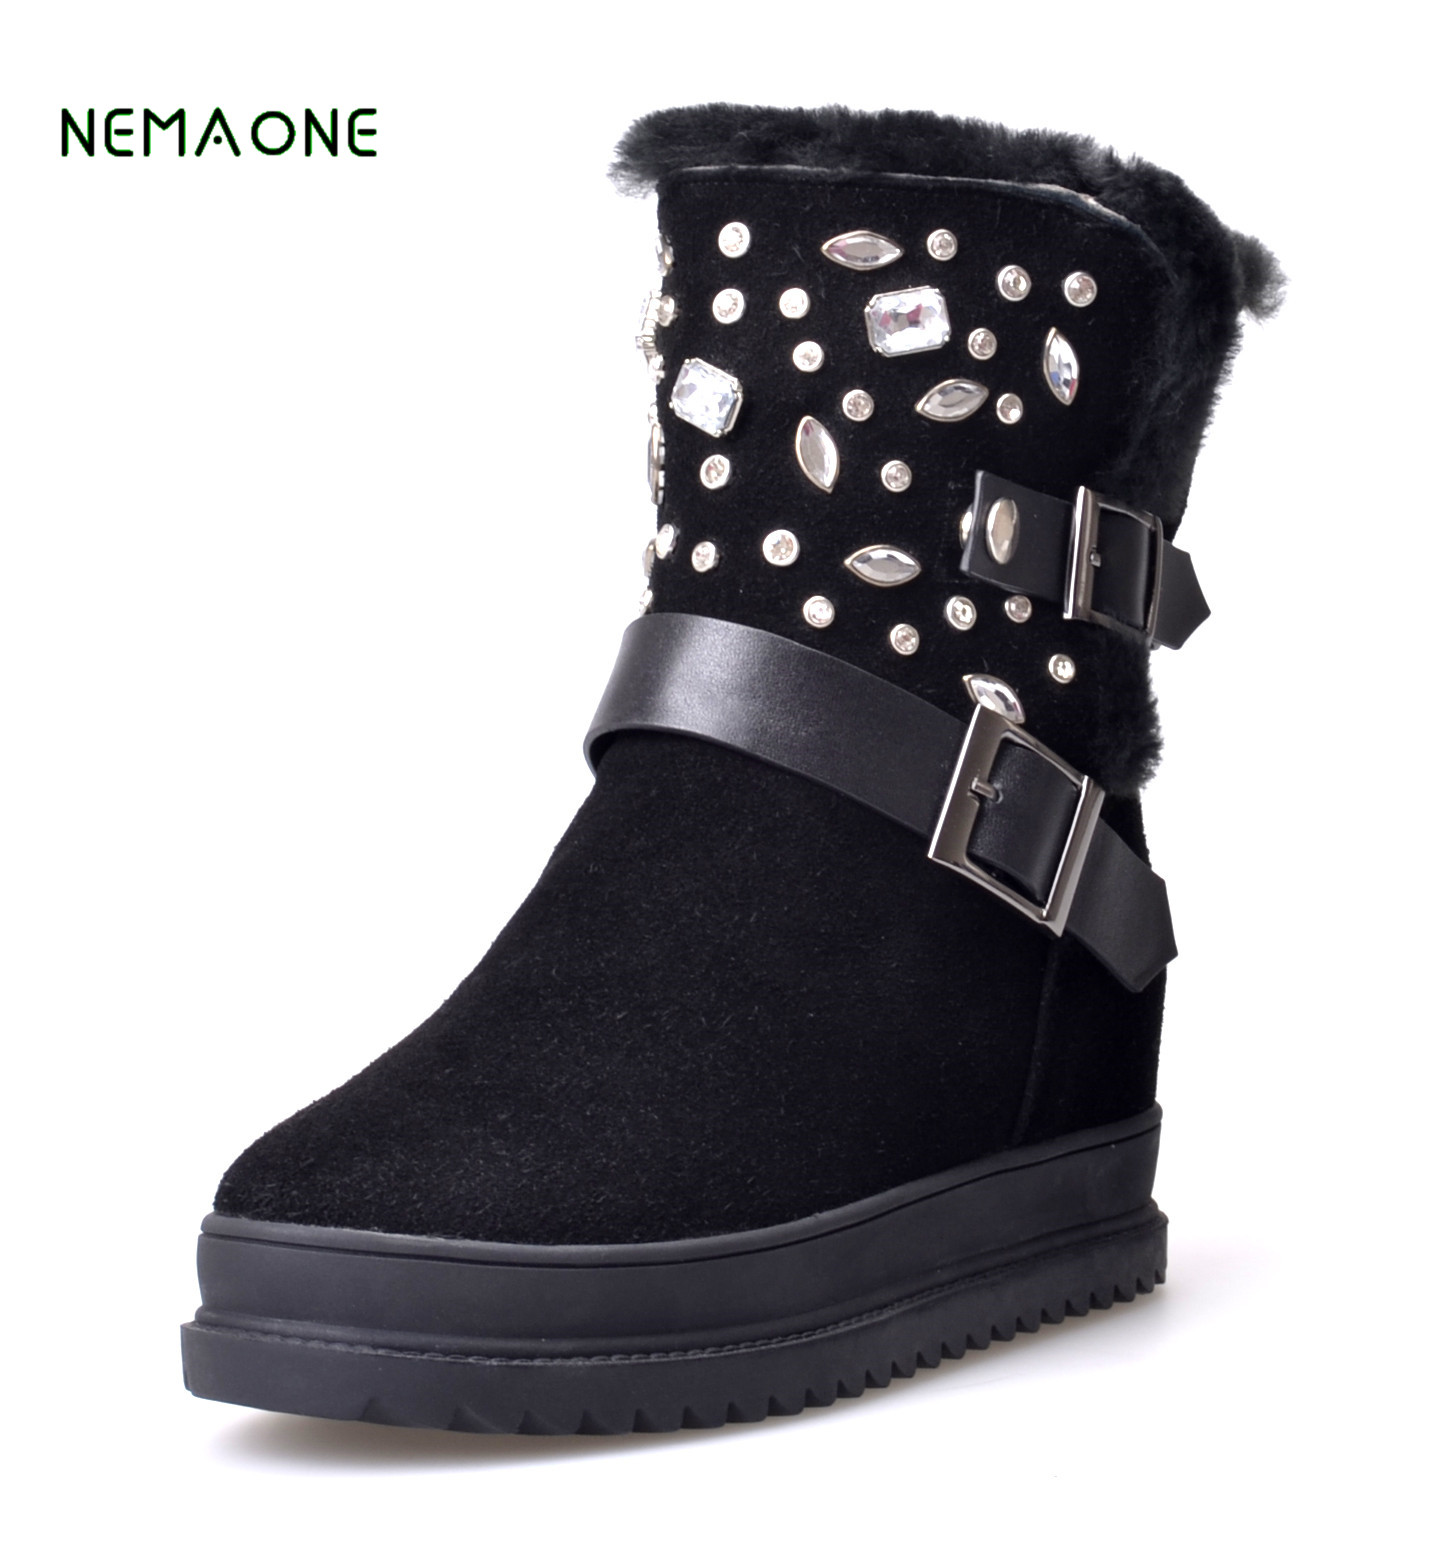 NEMAONE Luxury Winter Australia Sheepskin Snow Boots Natural Wool Sheep Fur Boots Mid Calf Crystal Button Flat Women Fur Boots quality assurance sheep fur snow boots female warm winter flat bandage calf height boots large size free shipping